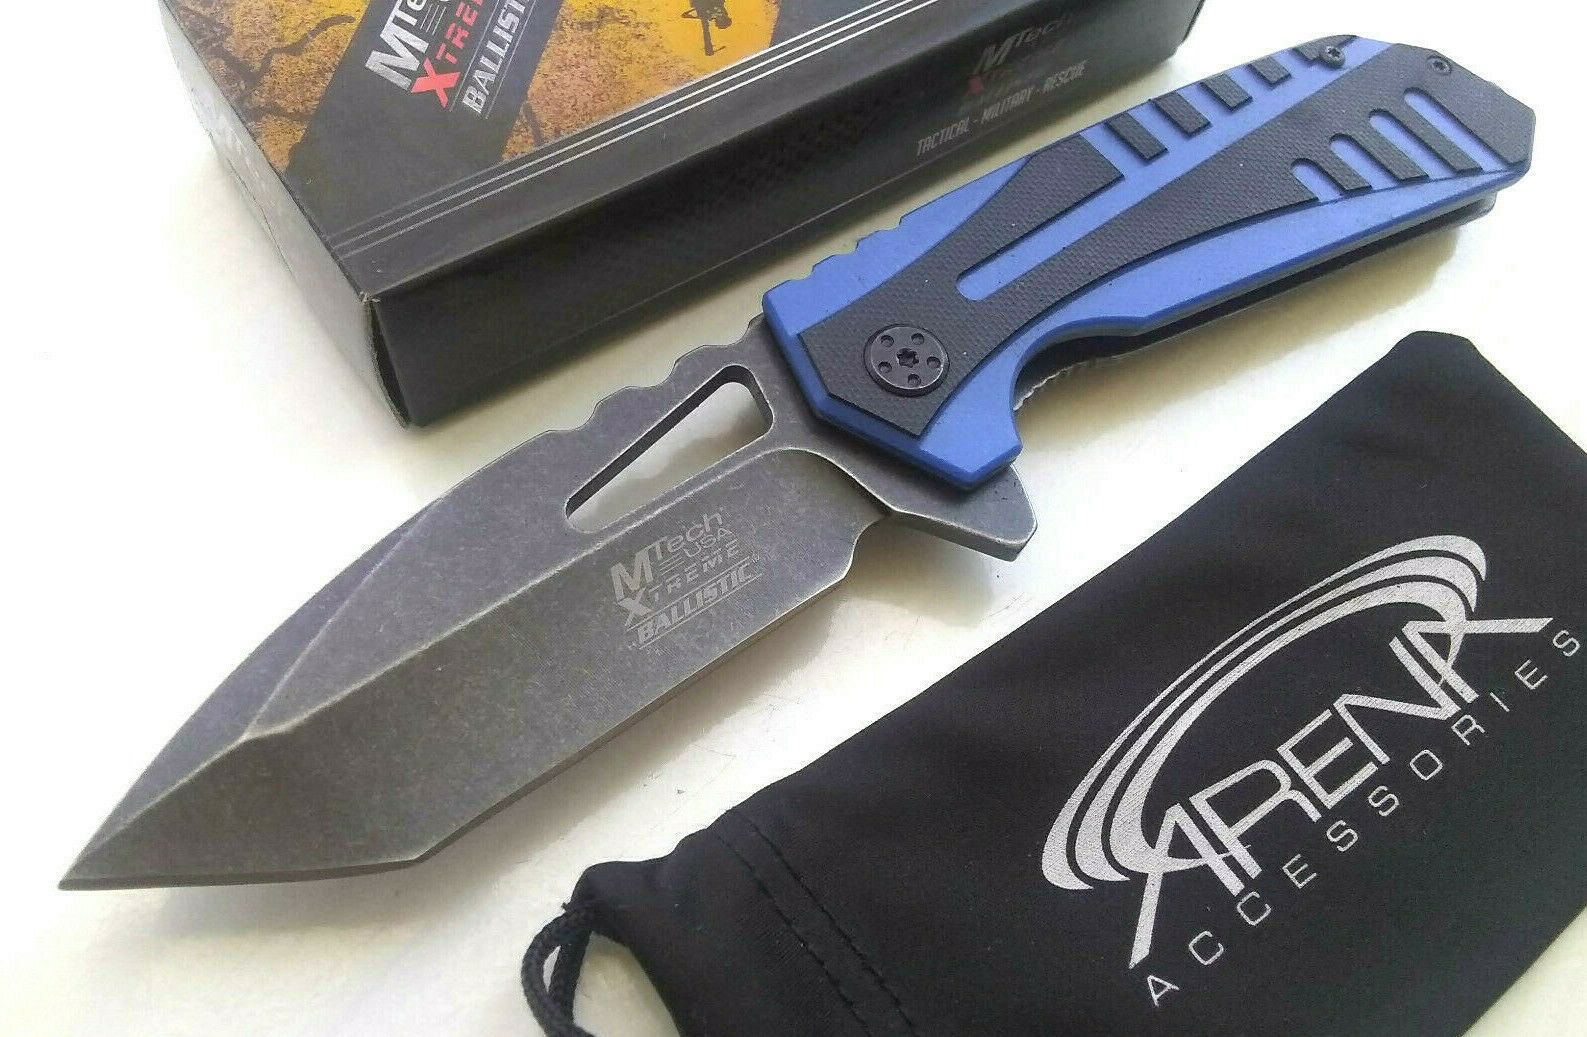 MTech Xtreme 4mm Thick Tanto Blade Spring Assisted Pocket Knife Flipper Blue G10 Stonewashed EDC Frame Lock